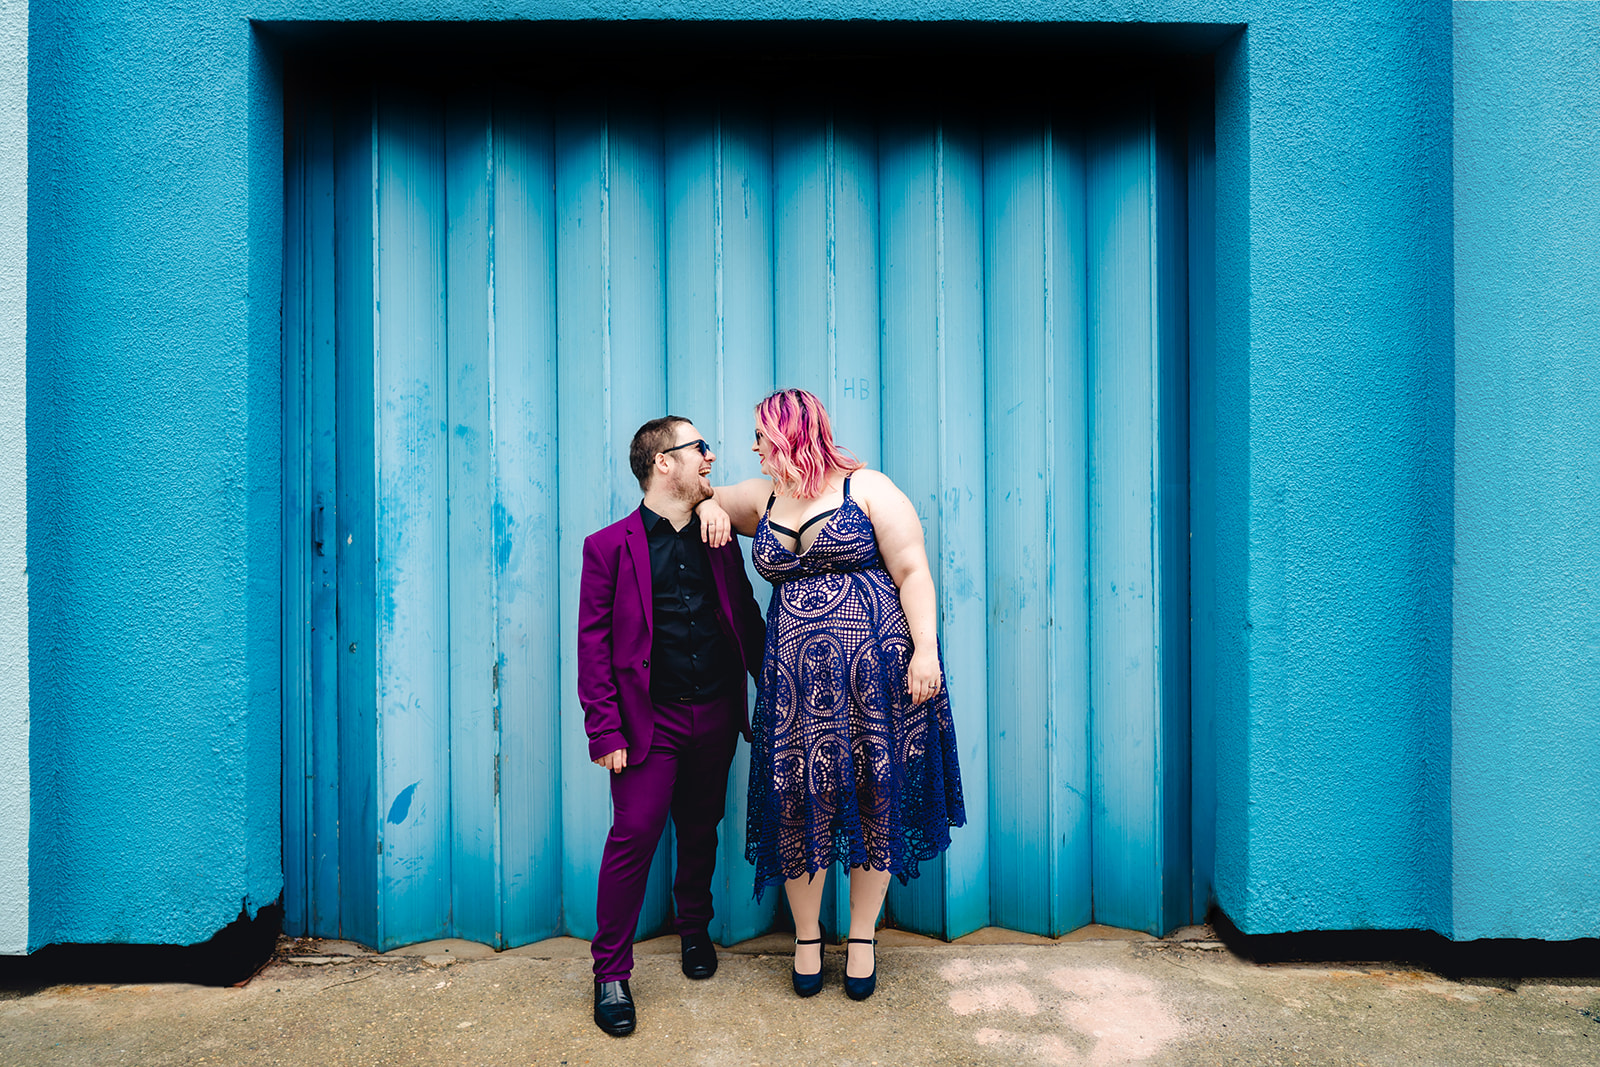 engagement shoots - birmingham engagement shoot - colourful wedding photoshoot - quirky wedding photos - fun wedding photography - alternative wedding - urban wedding shoot